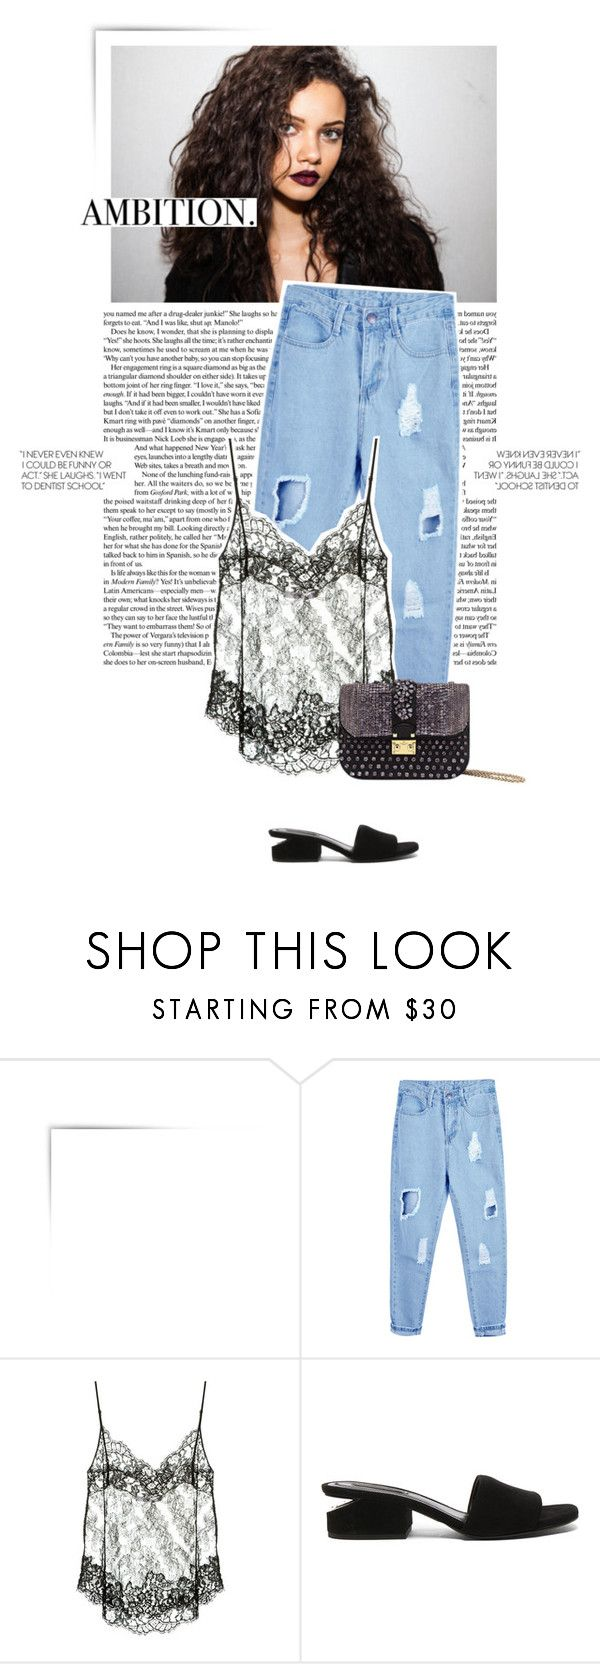 """""""AMBITION"""" by uniqueimperfection ❤ liked on Polyvore featuring Givenchy, Alexander Wang, black, denim, lace, jeans and uniqueimperfection"""